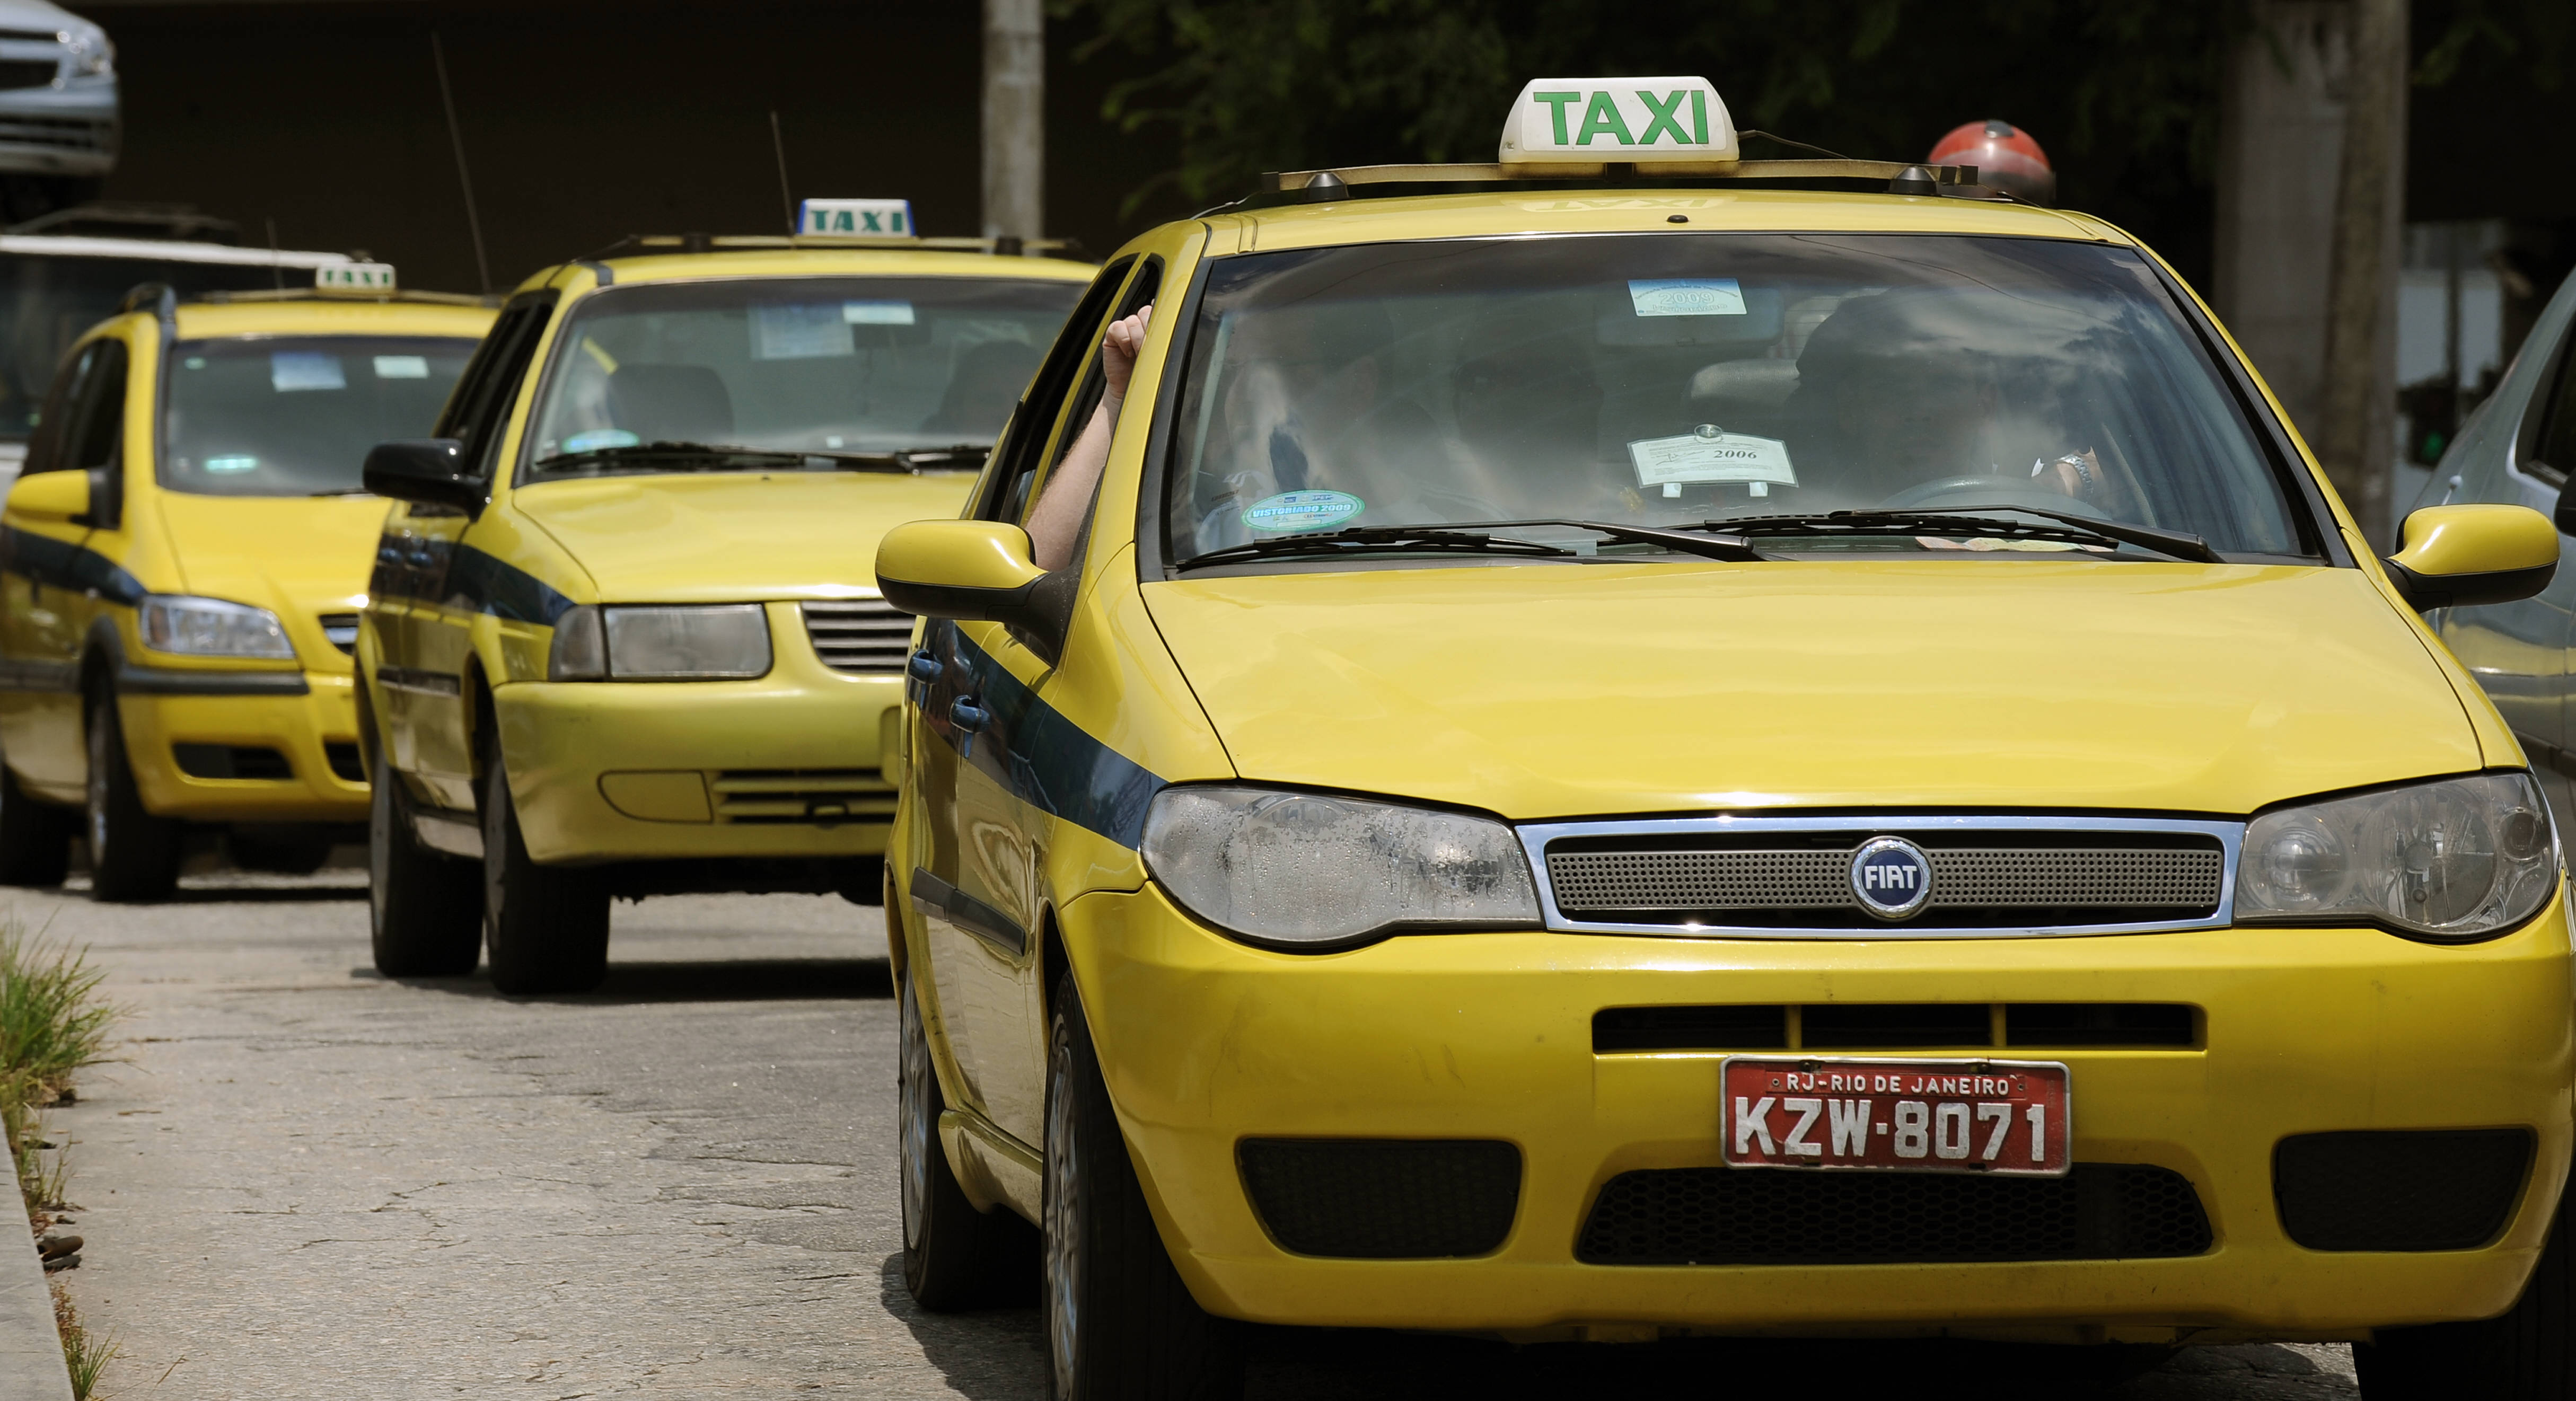 Taxis drive in a street of Rio de Janeir